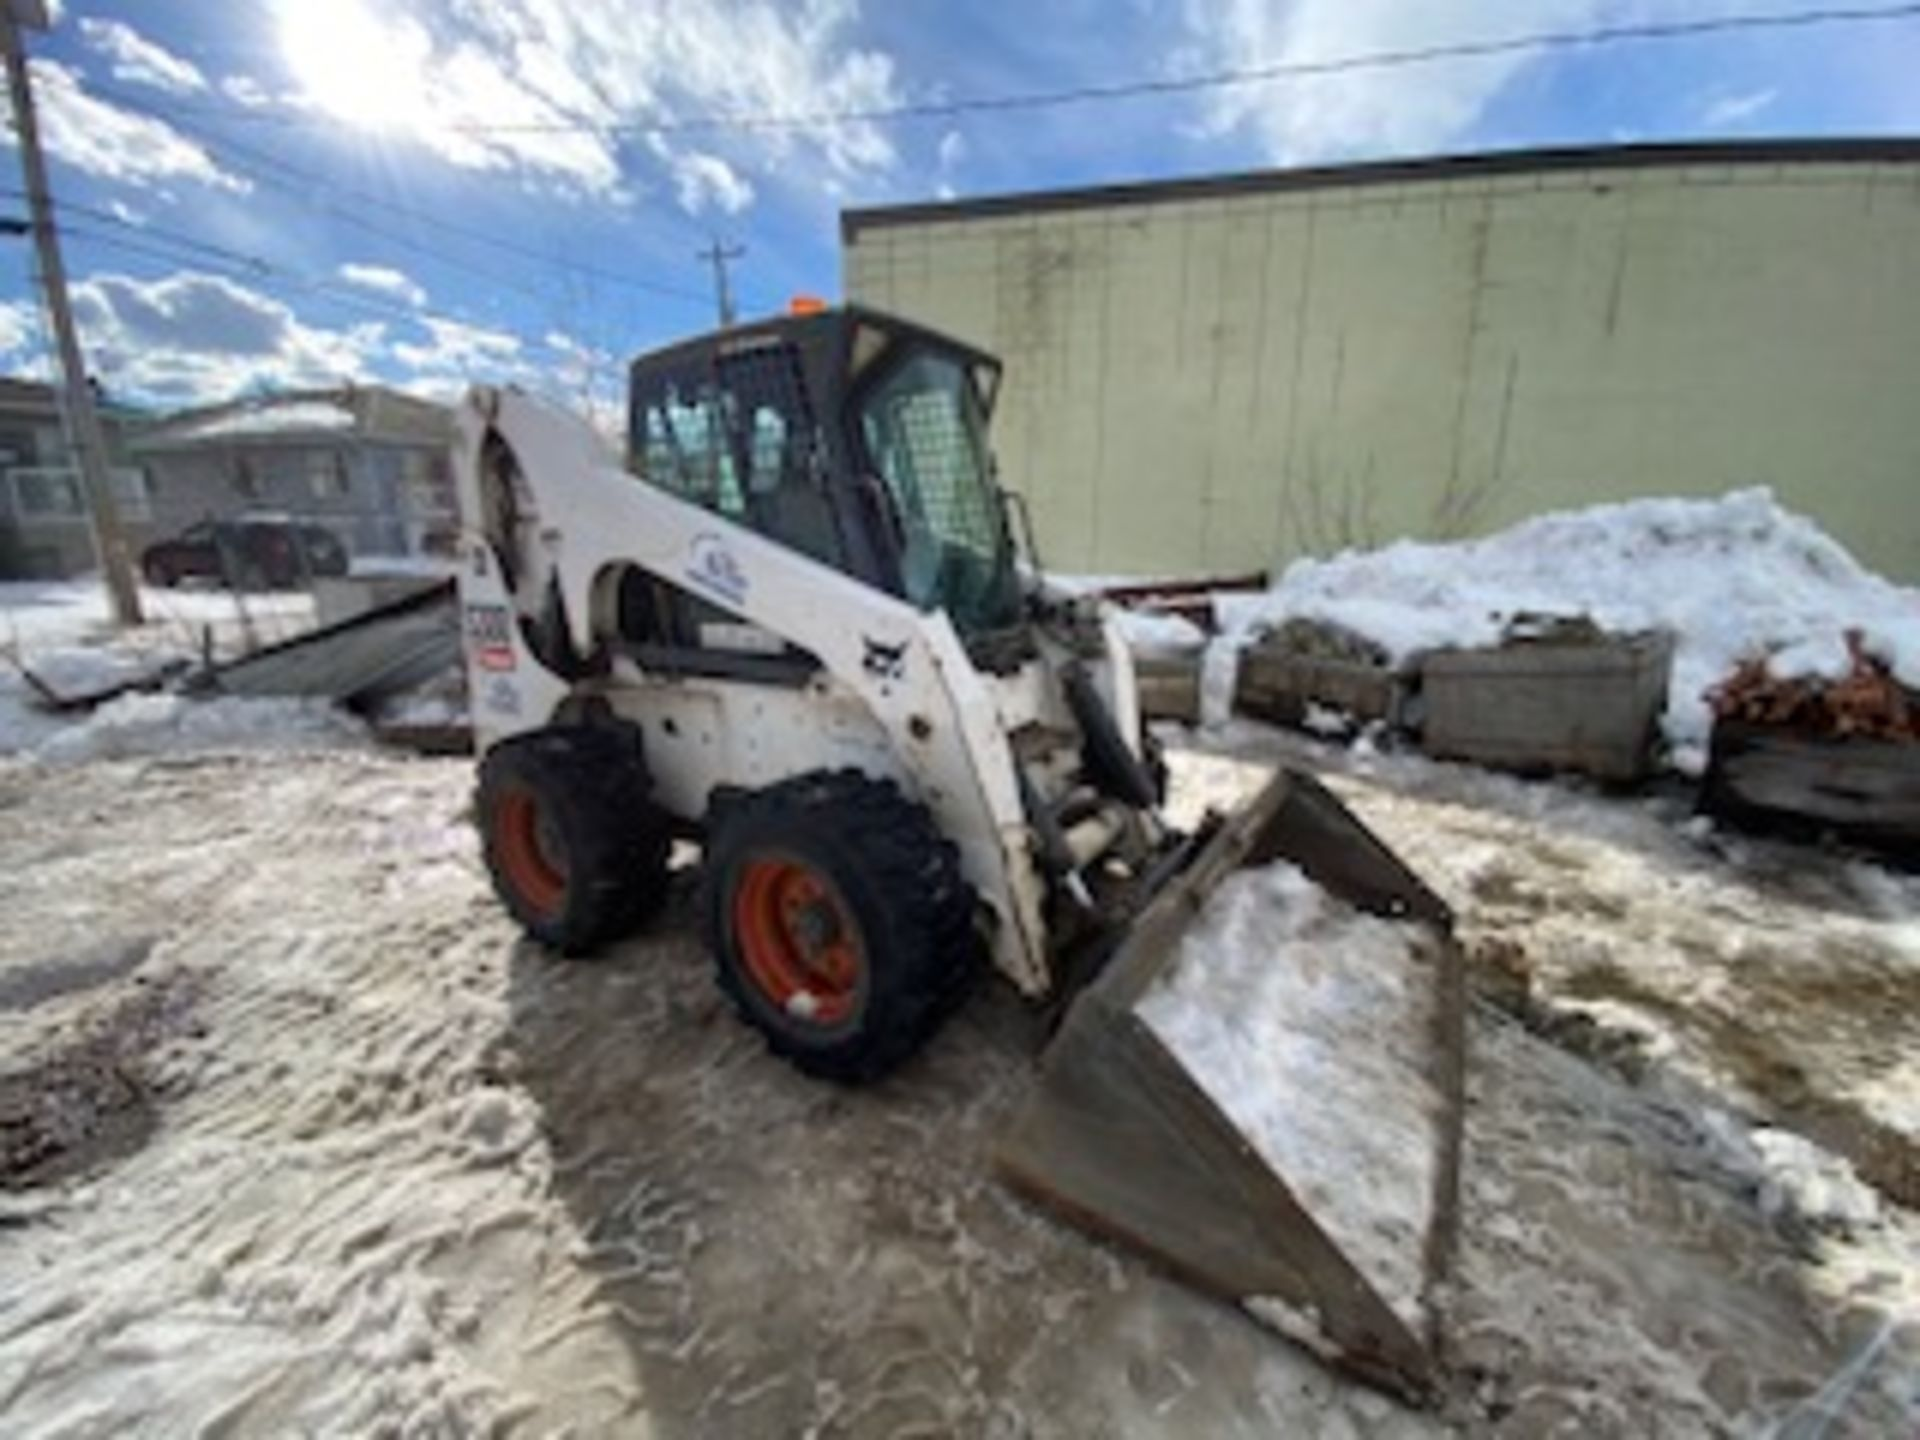 2008 BOBCAT S-300 SKIDSTEER LOADER, SMOOTH BUCKET, HYDRAULIC DETACH, 5135 HOURS, S/N 531140446 - GP